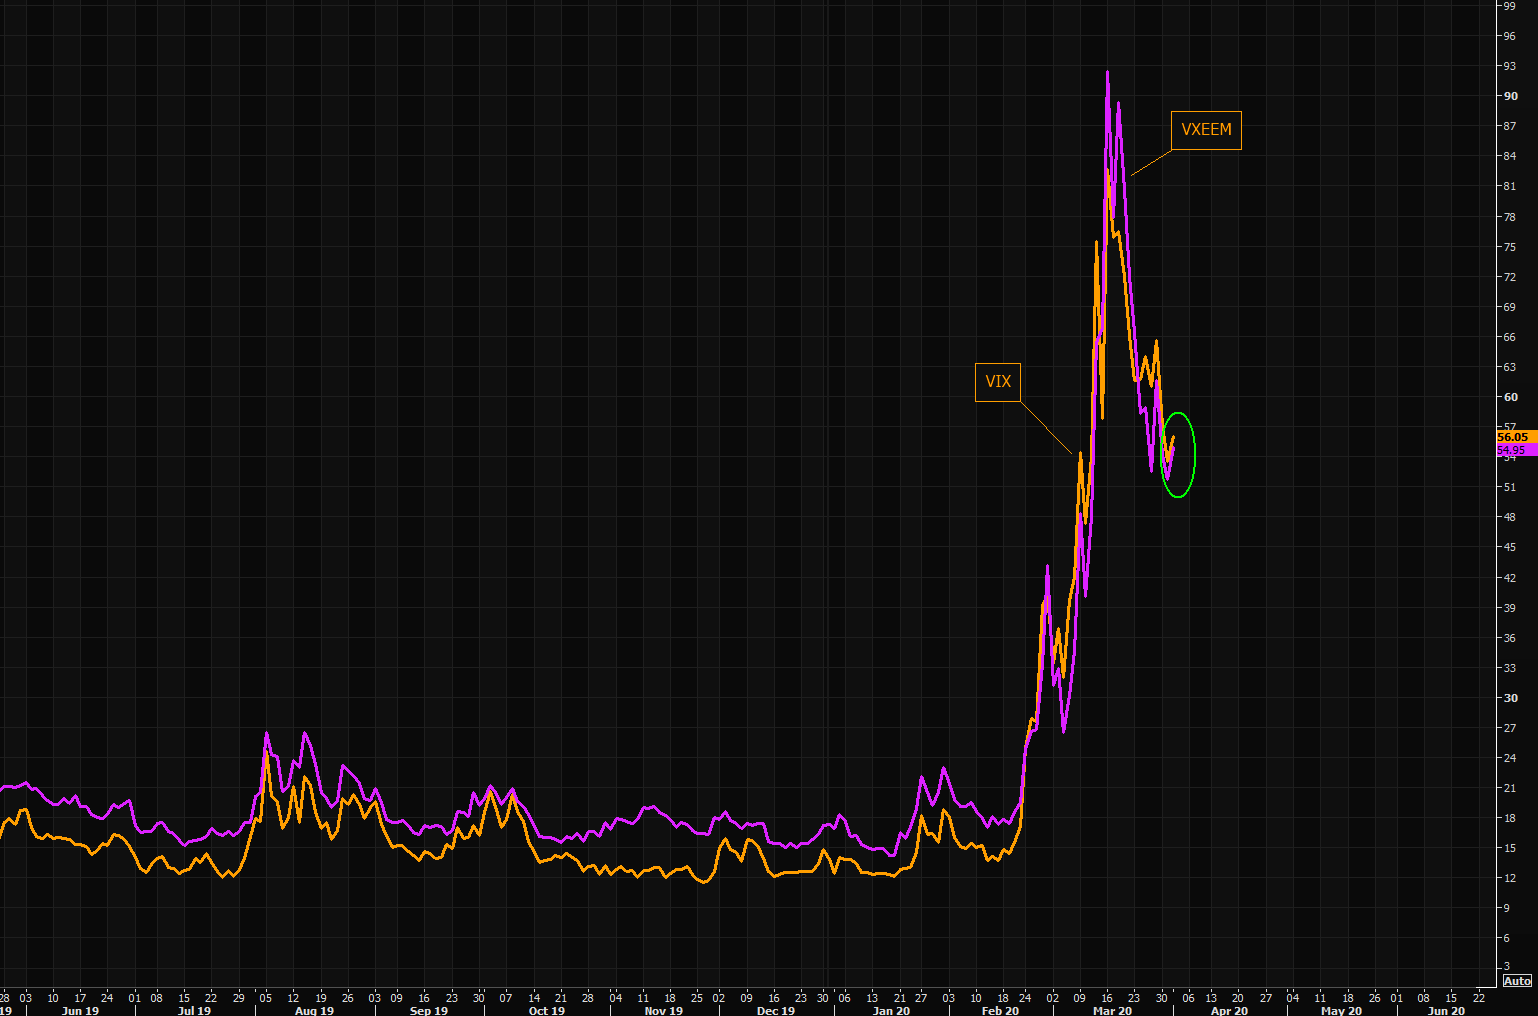 EM risk spiking on a relative basis makes sense, but what is VIX doing?